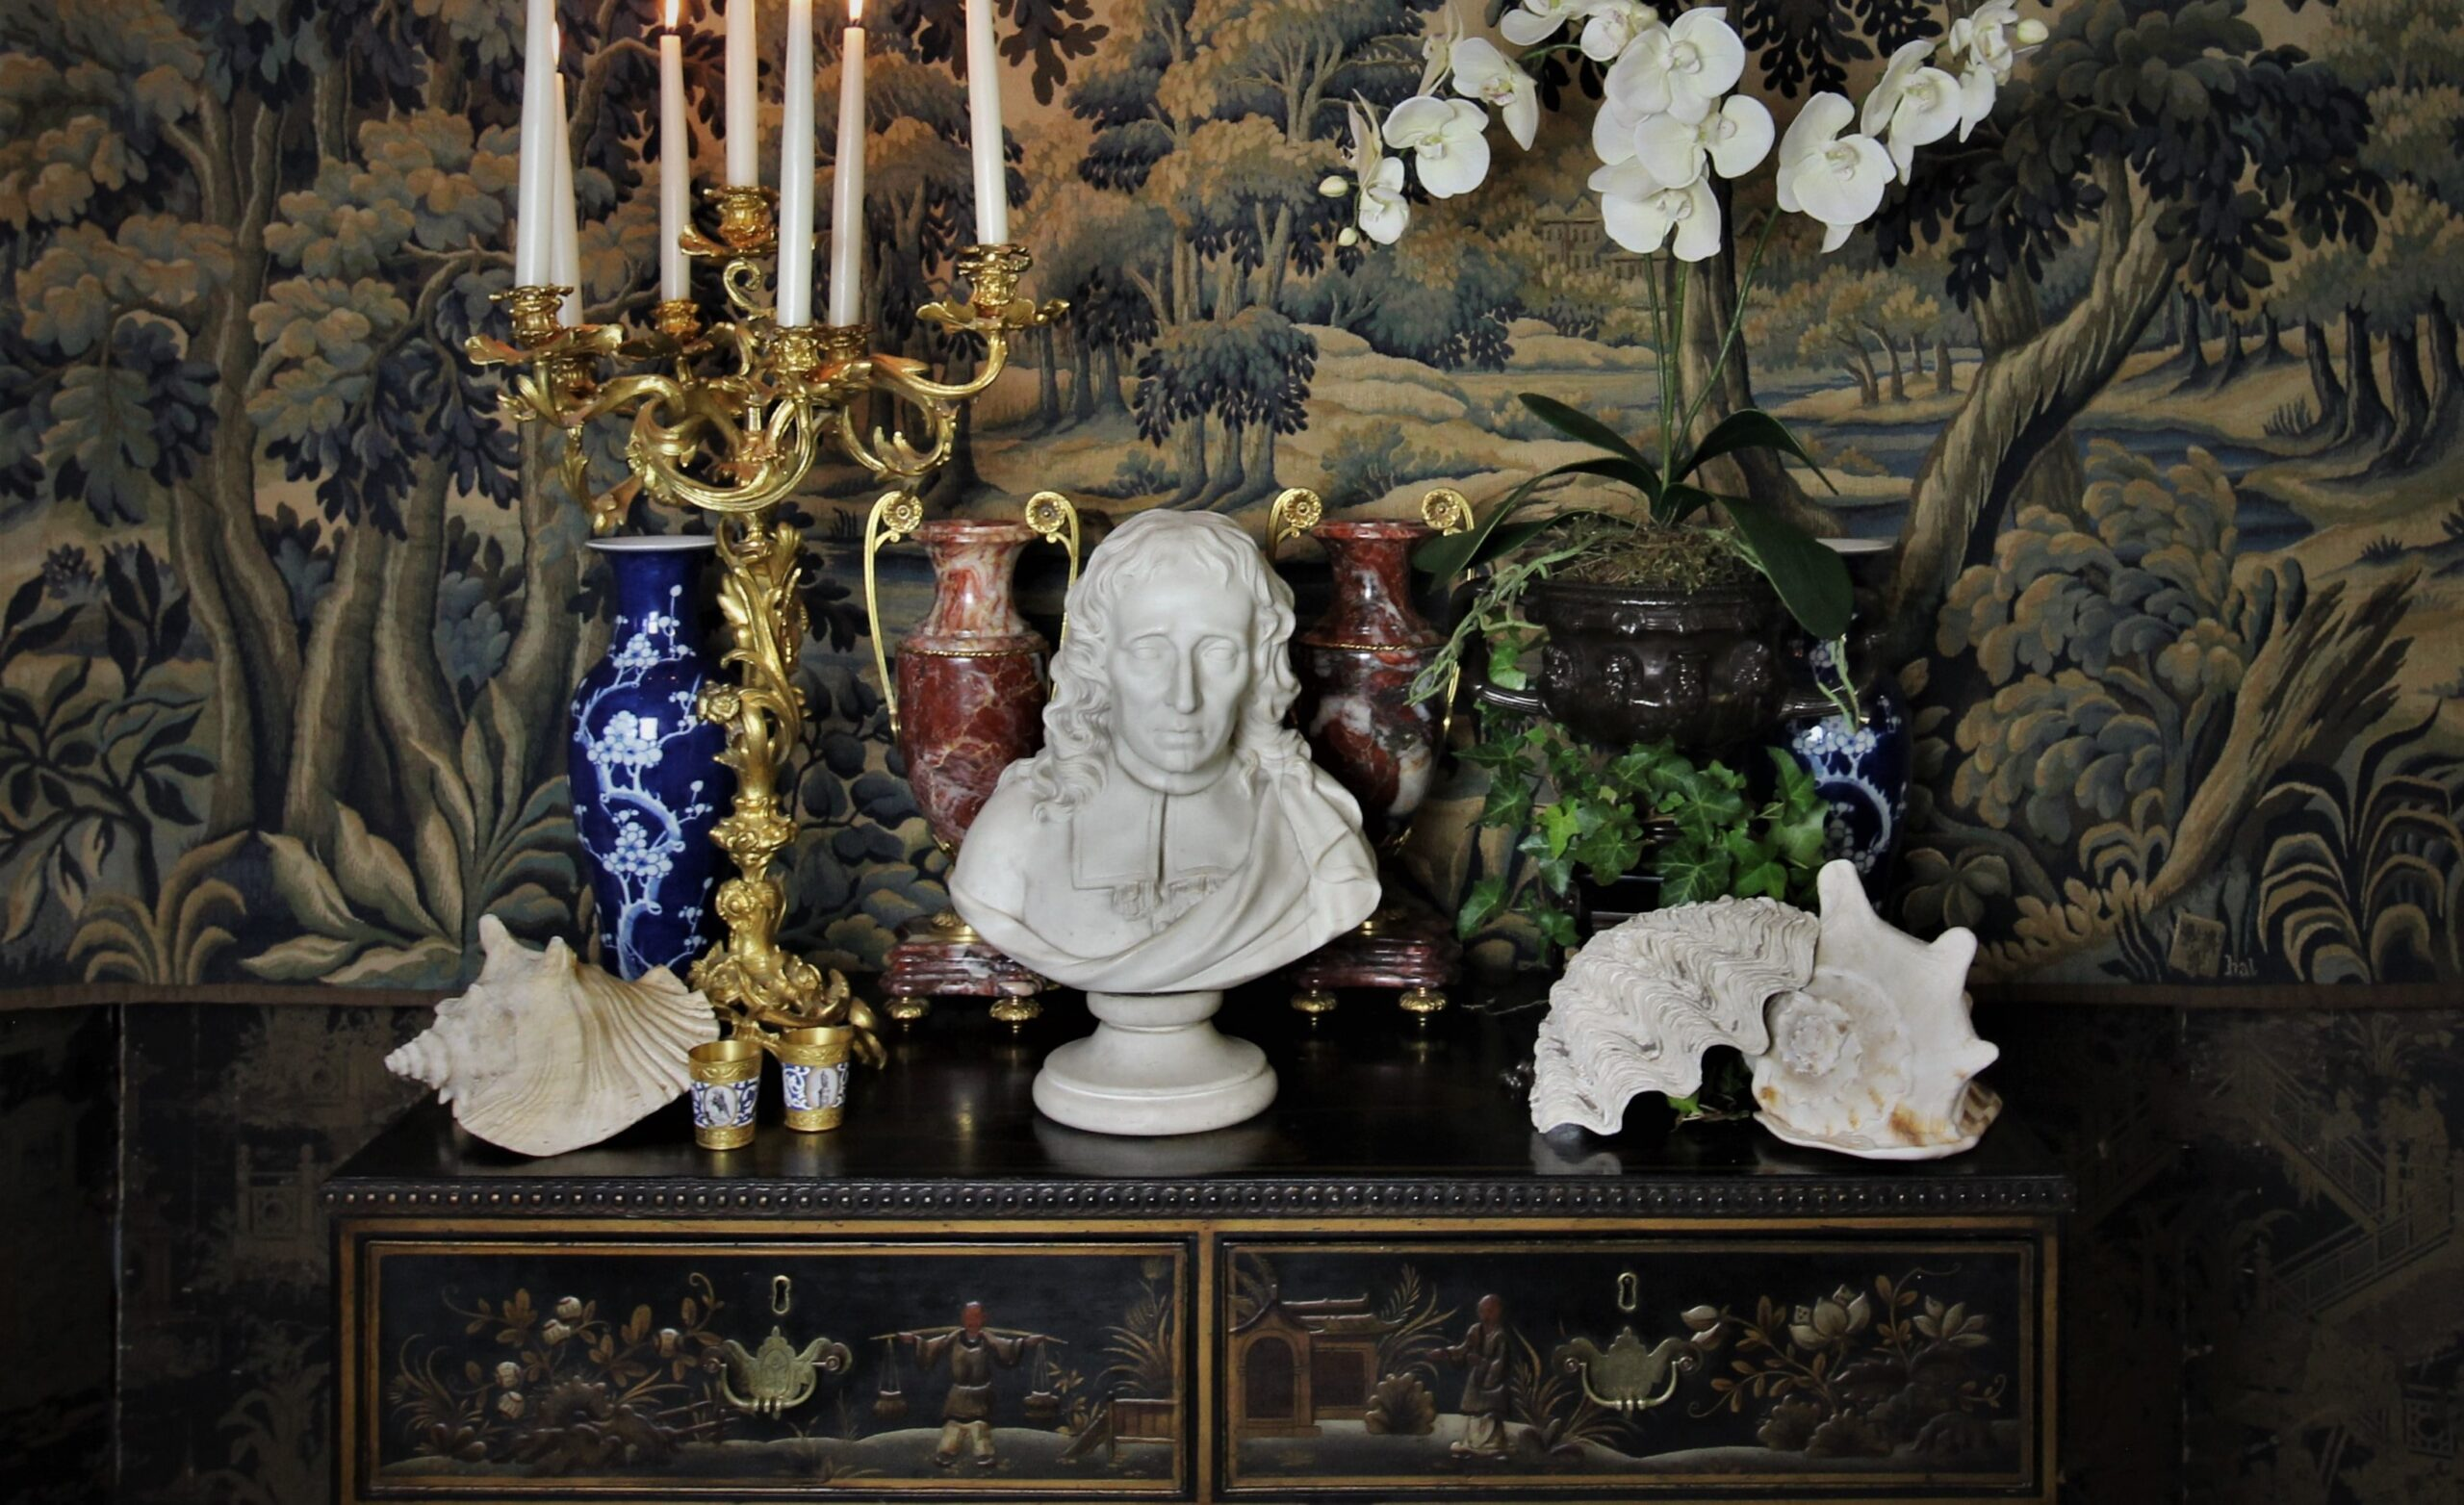 Made in Chelsea : 18th century porcelain proves popular in our October auction